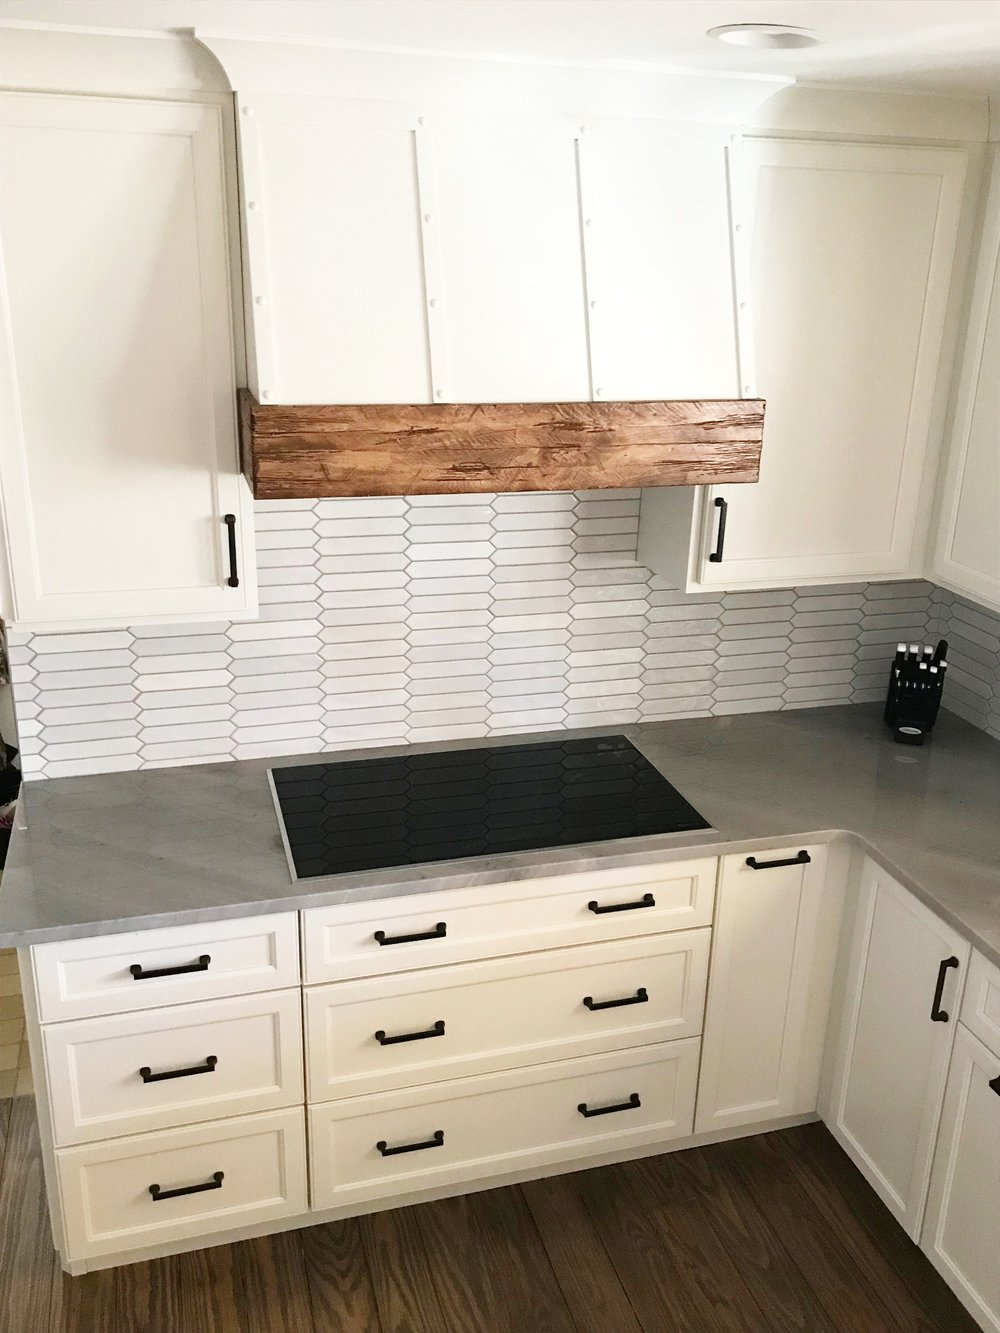 Custom Farmhouse Vent Hood with Rustic Wood